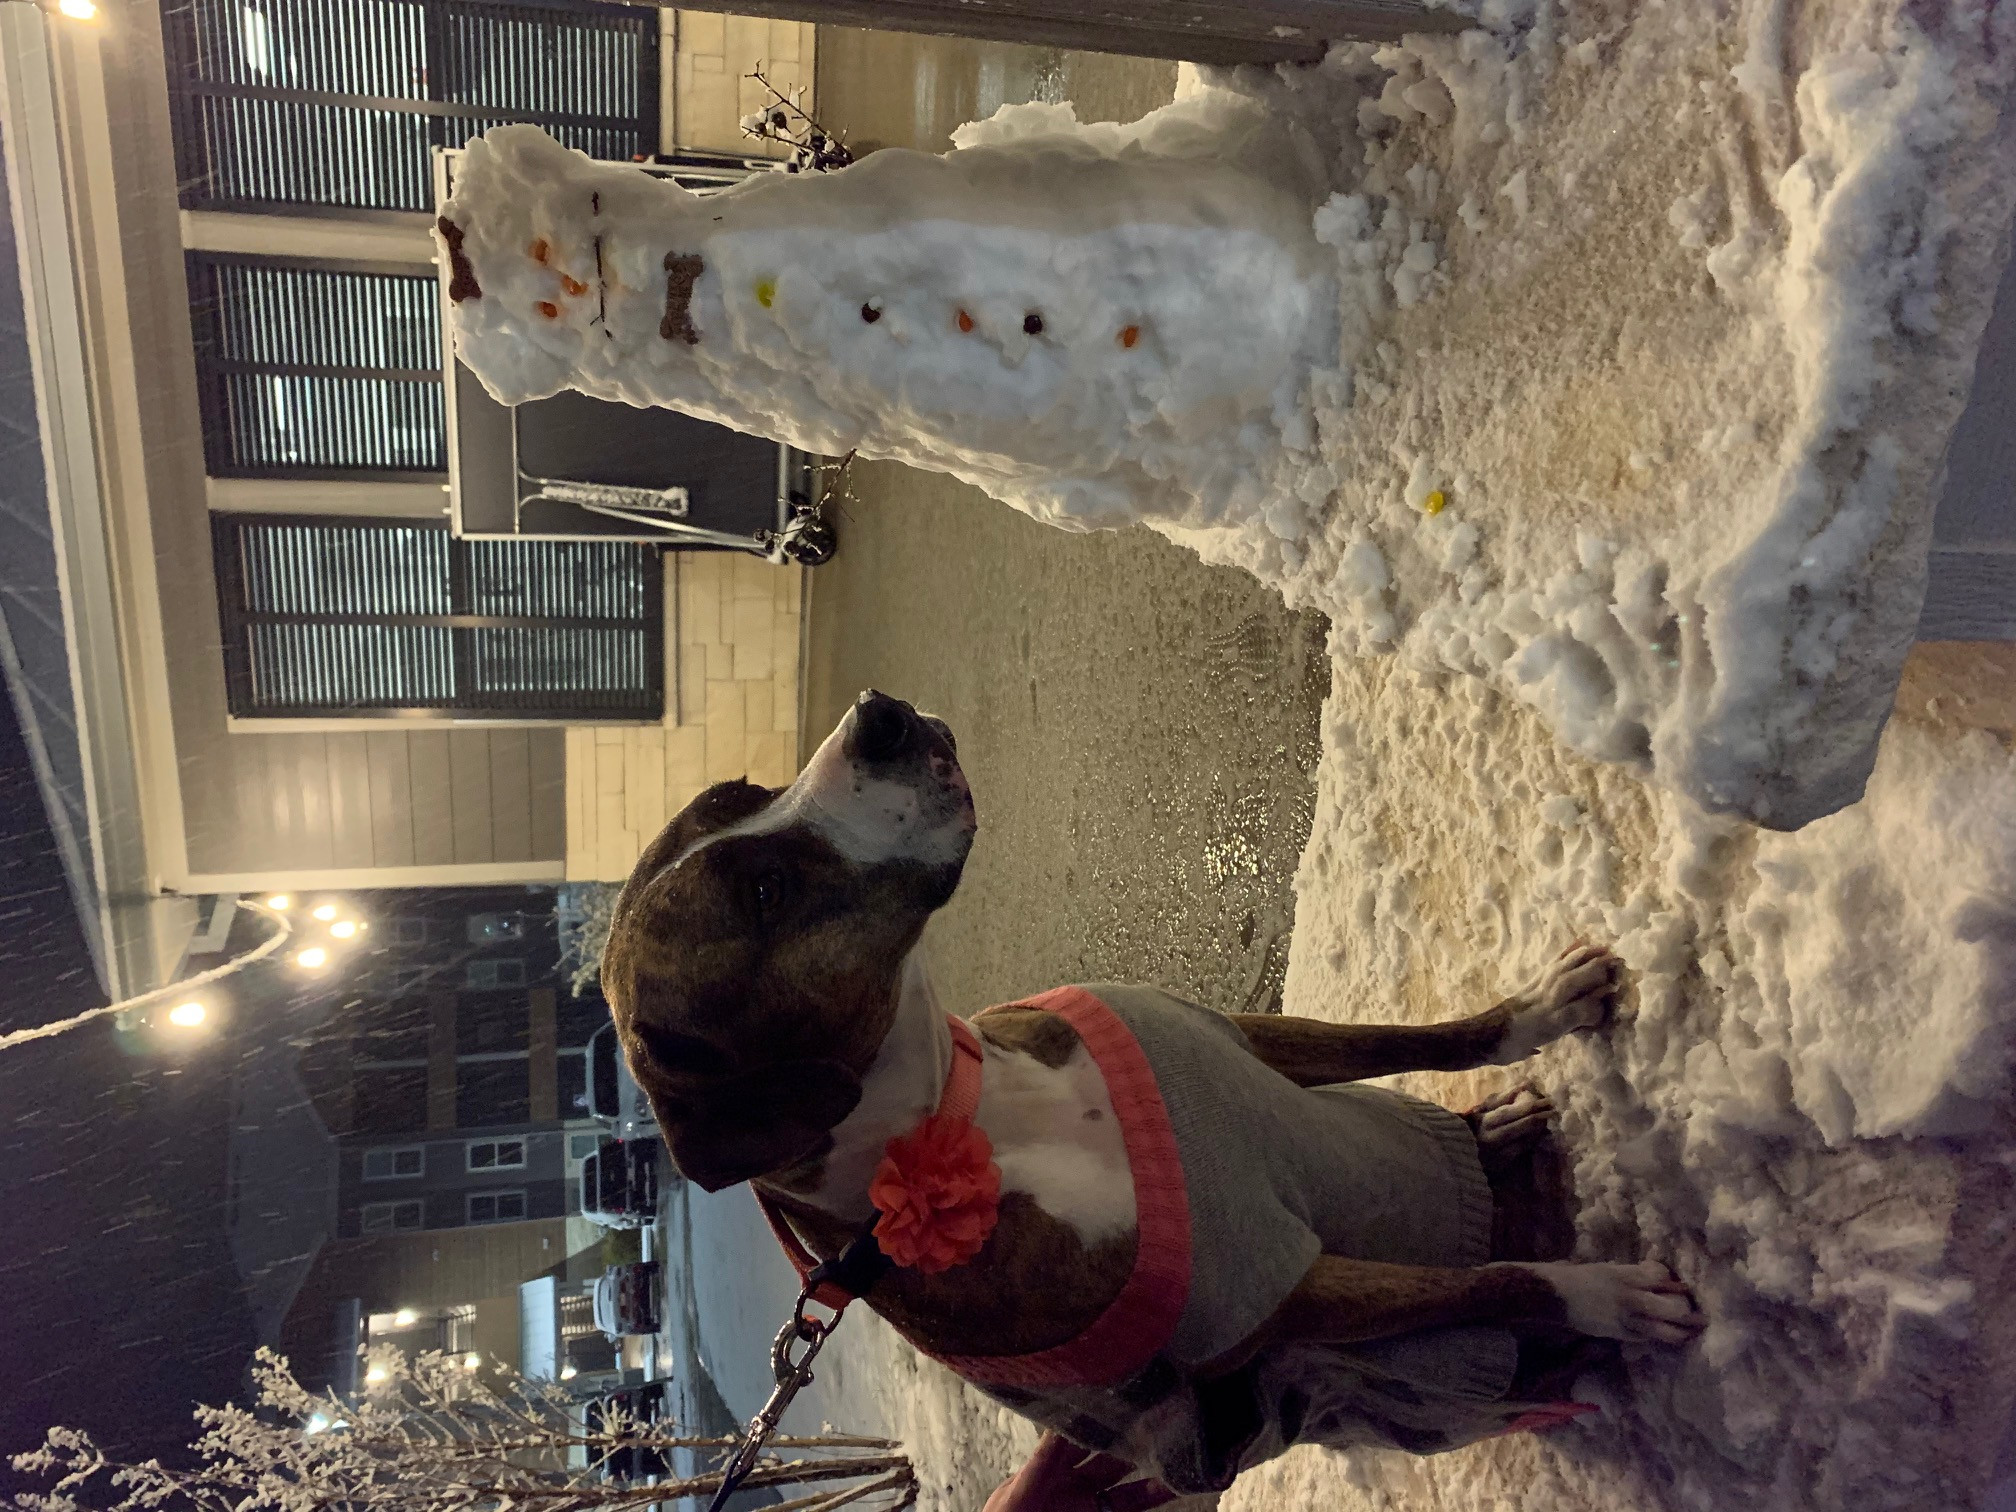 Melissa Armonstrong's dog Mara wants to know how the snowman got her dog treats (photo uploaded sideways)